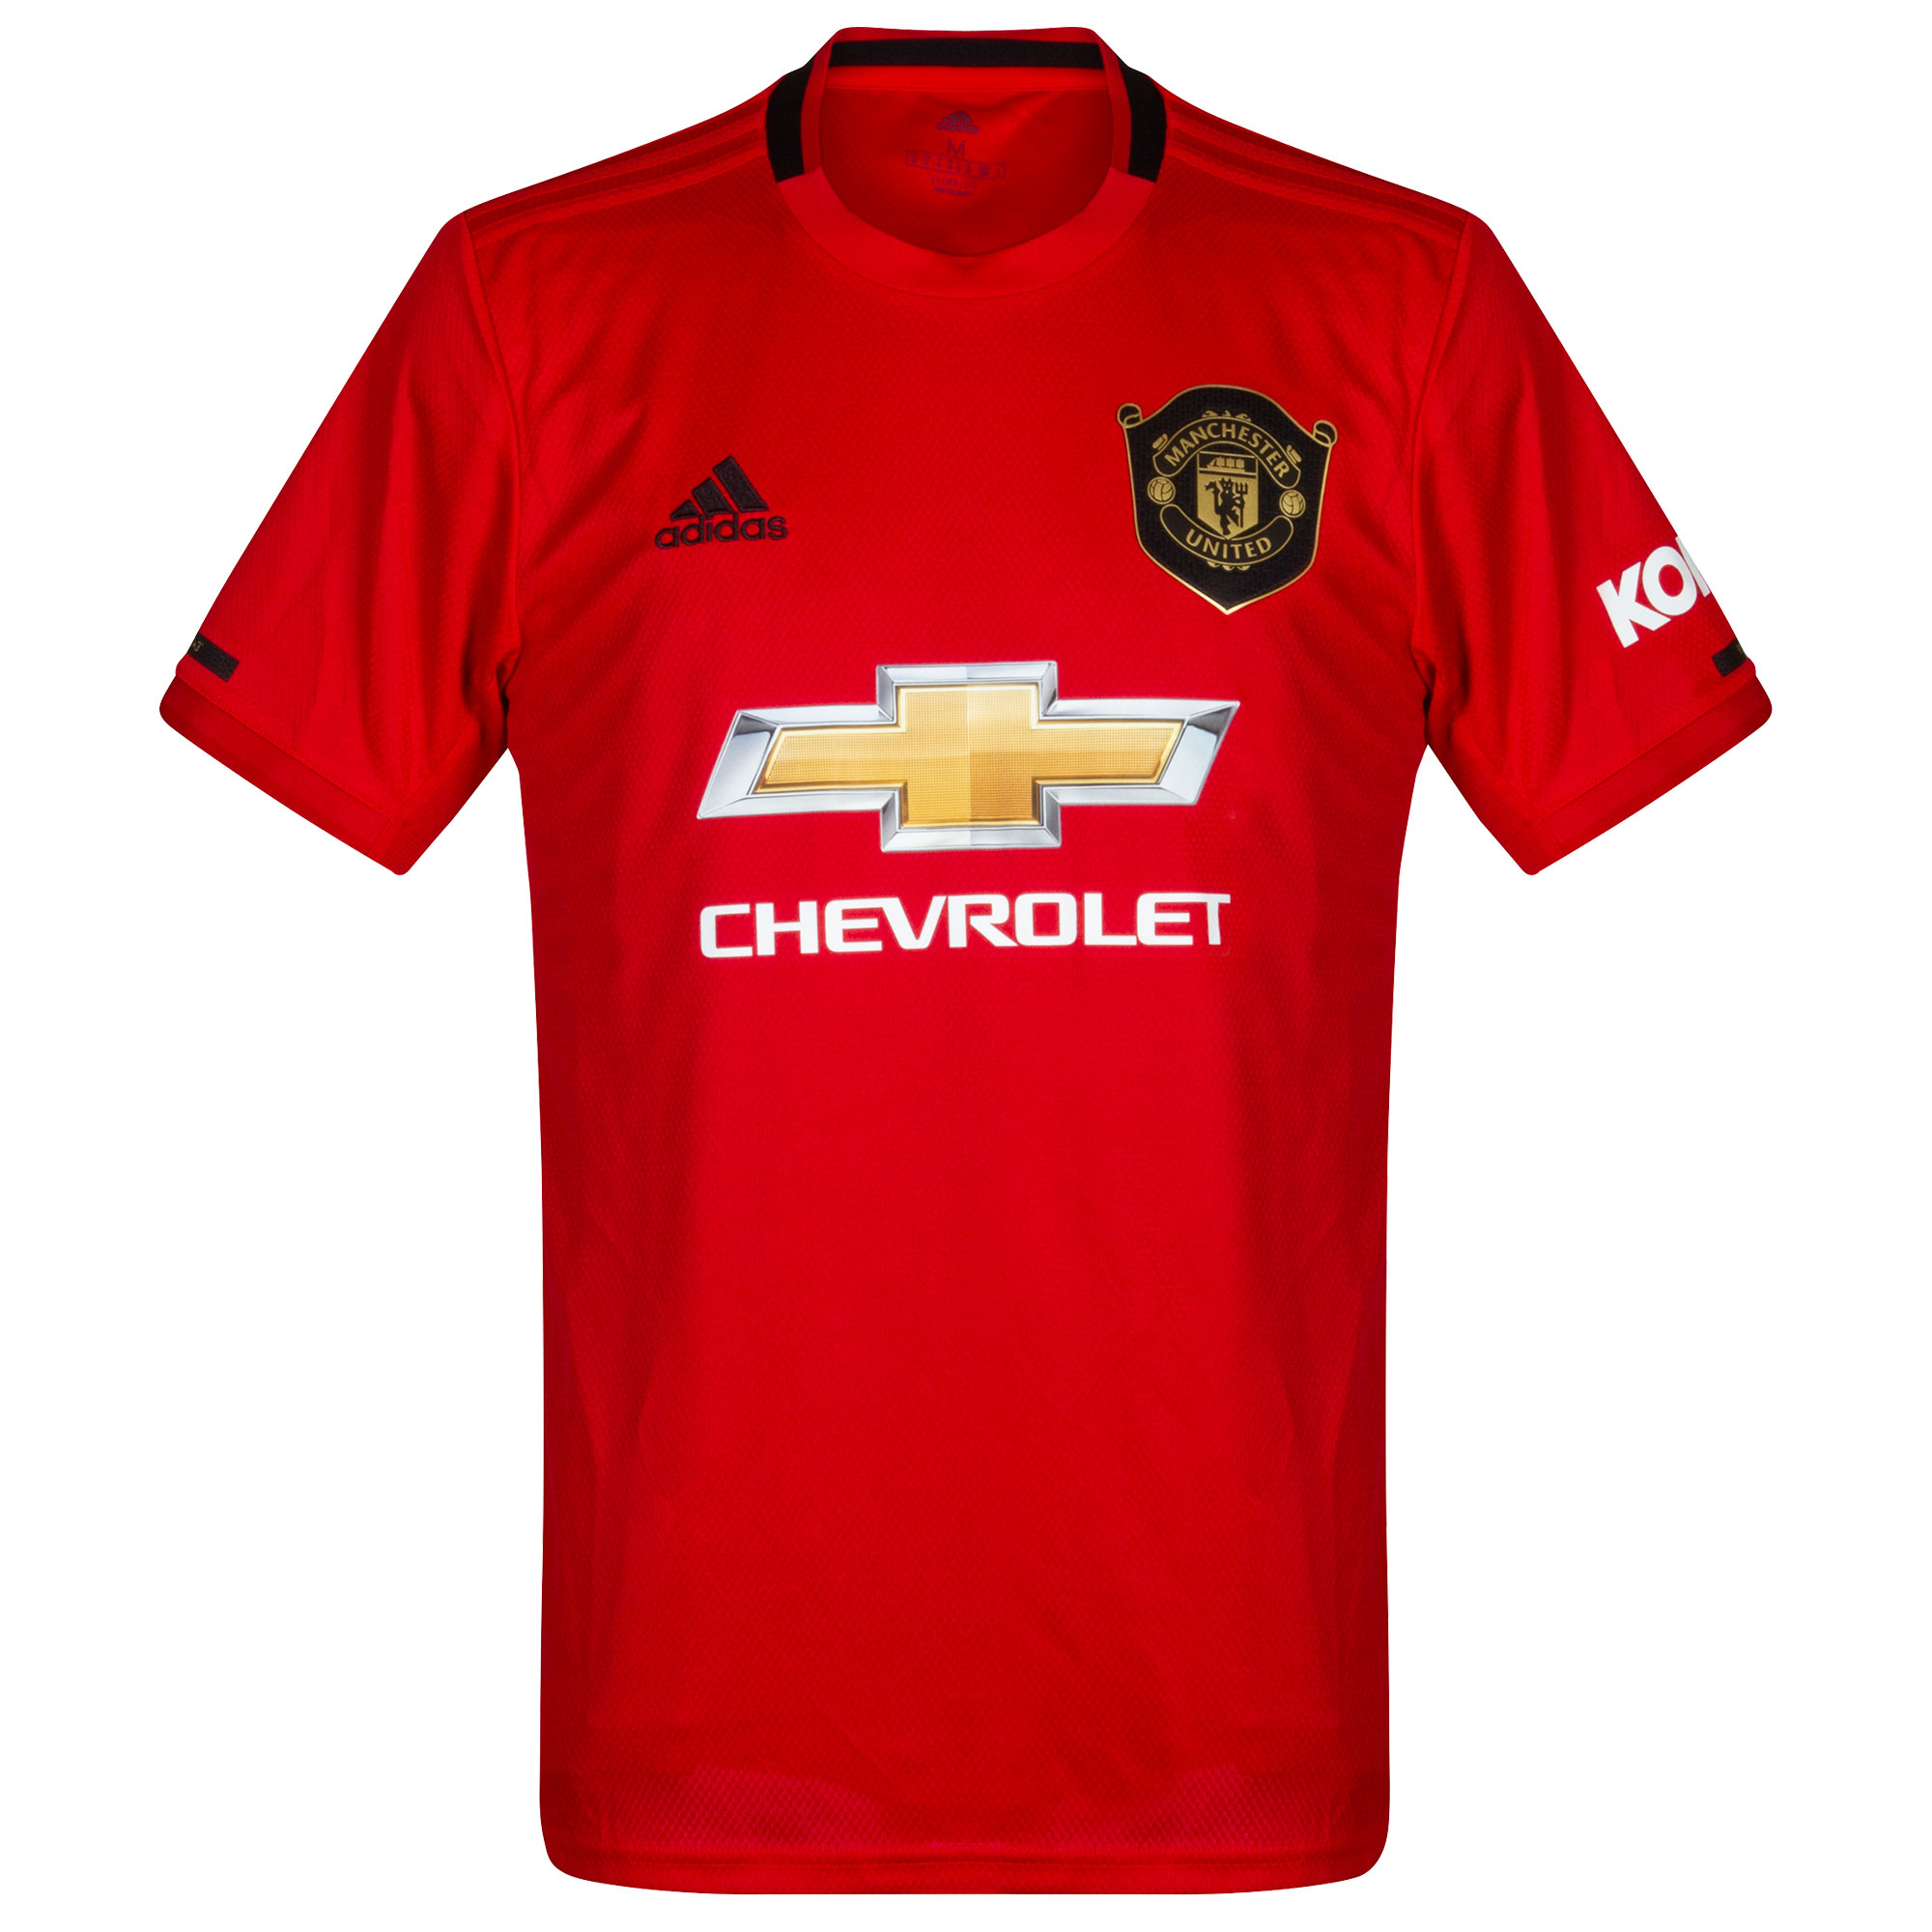 finest selection 0a513 9f054 Manchester United Football Kits | Man Utd Kits | Buy Online ...